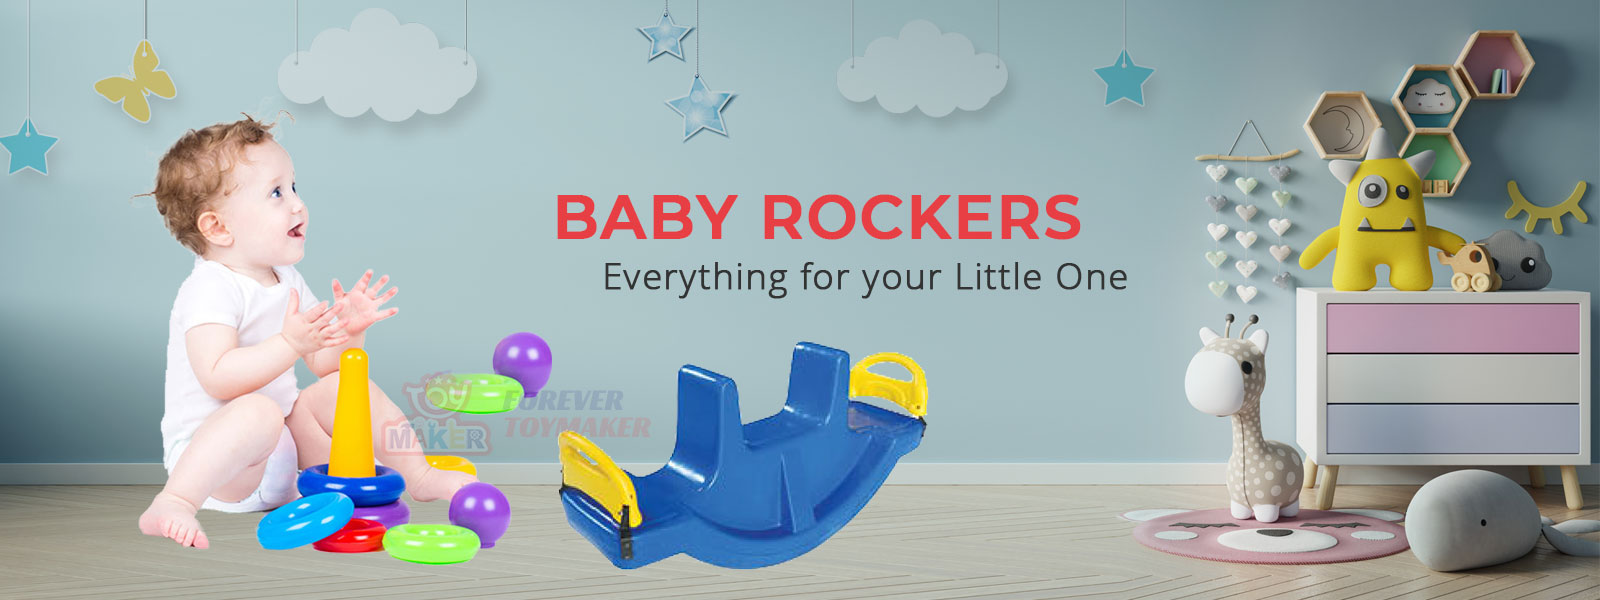 Baby Rockers Manufacturers in Thrissur